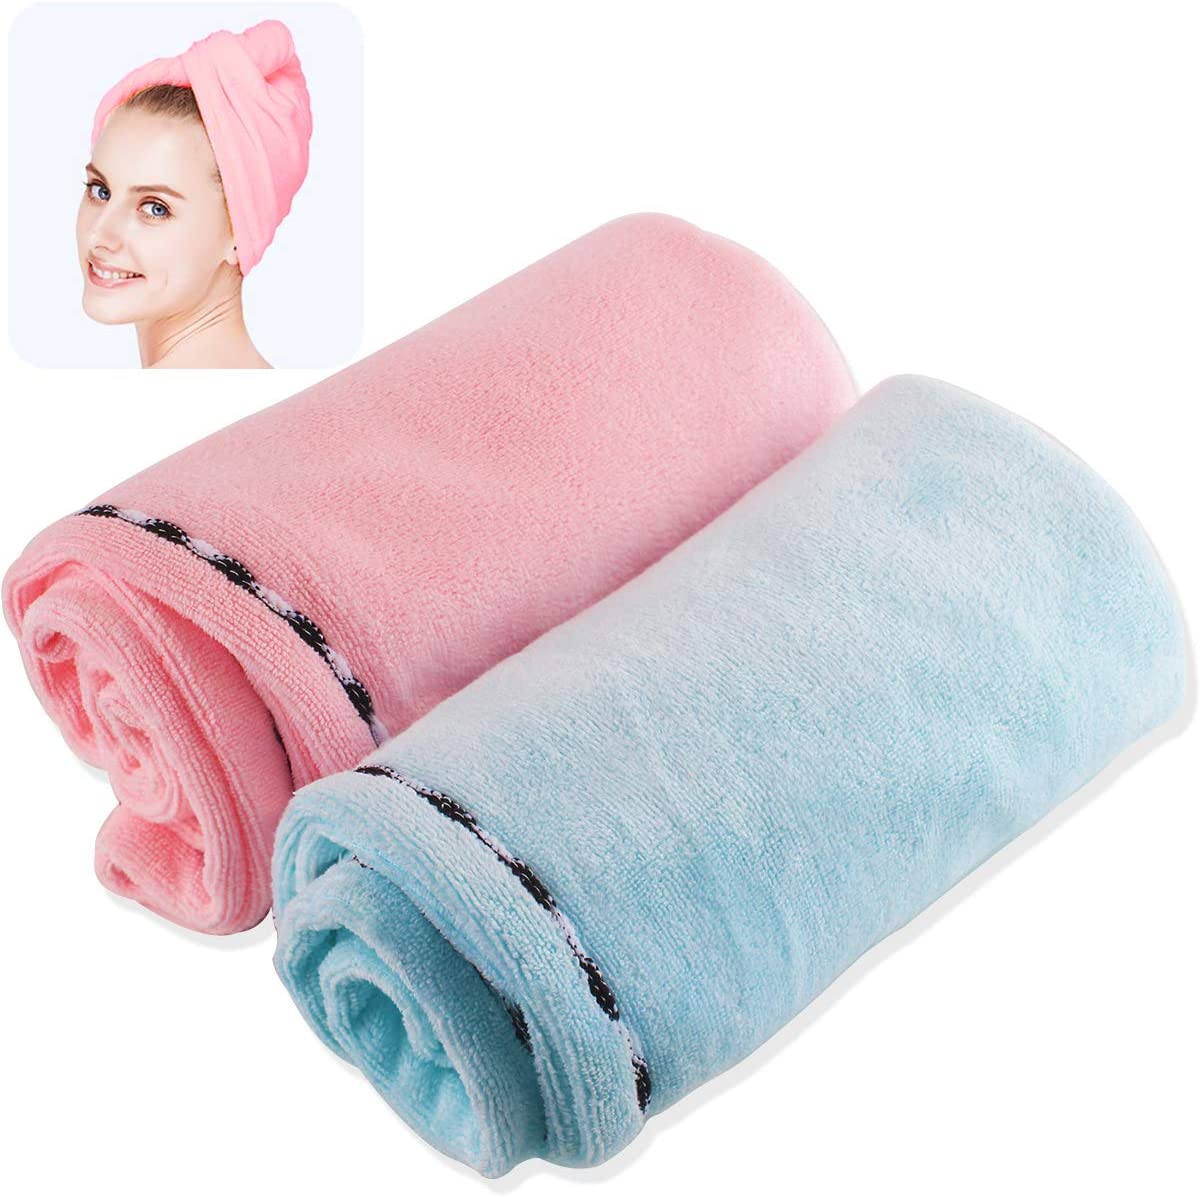 NORACLAN Microfiber Hair Towels Drying Wraps for Women Turban Twist Hair Towel Wrap Head Towel with Button, Soft and Strong Water Absorption, No Fading, No Lint